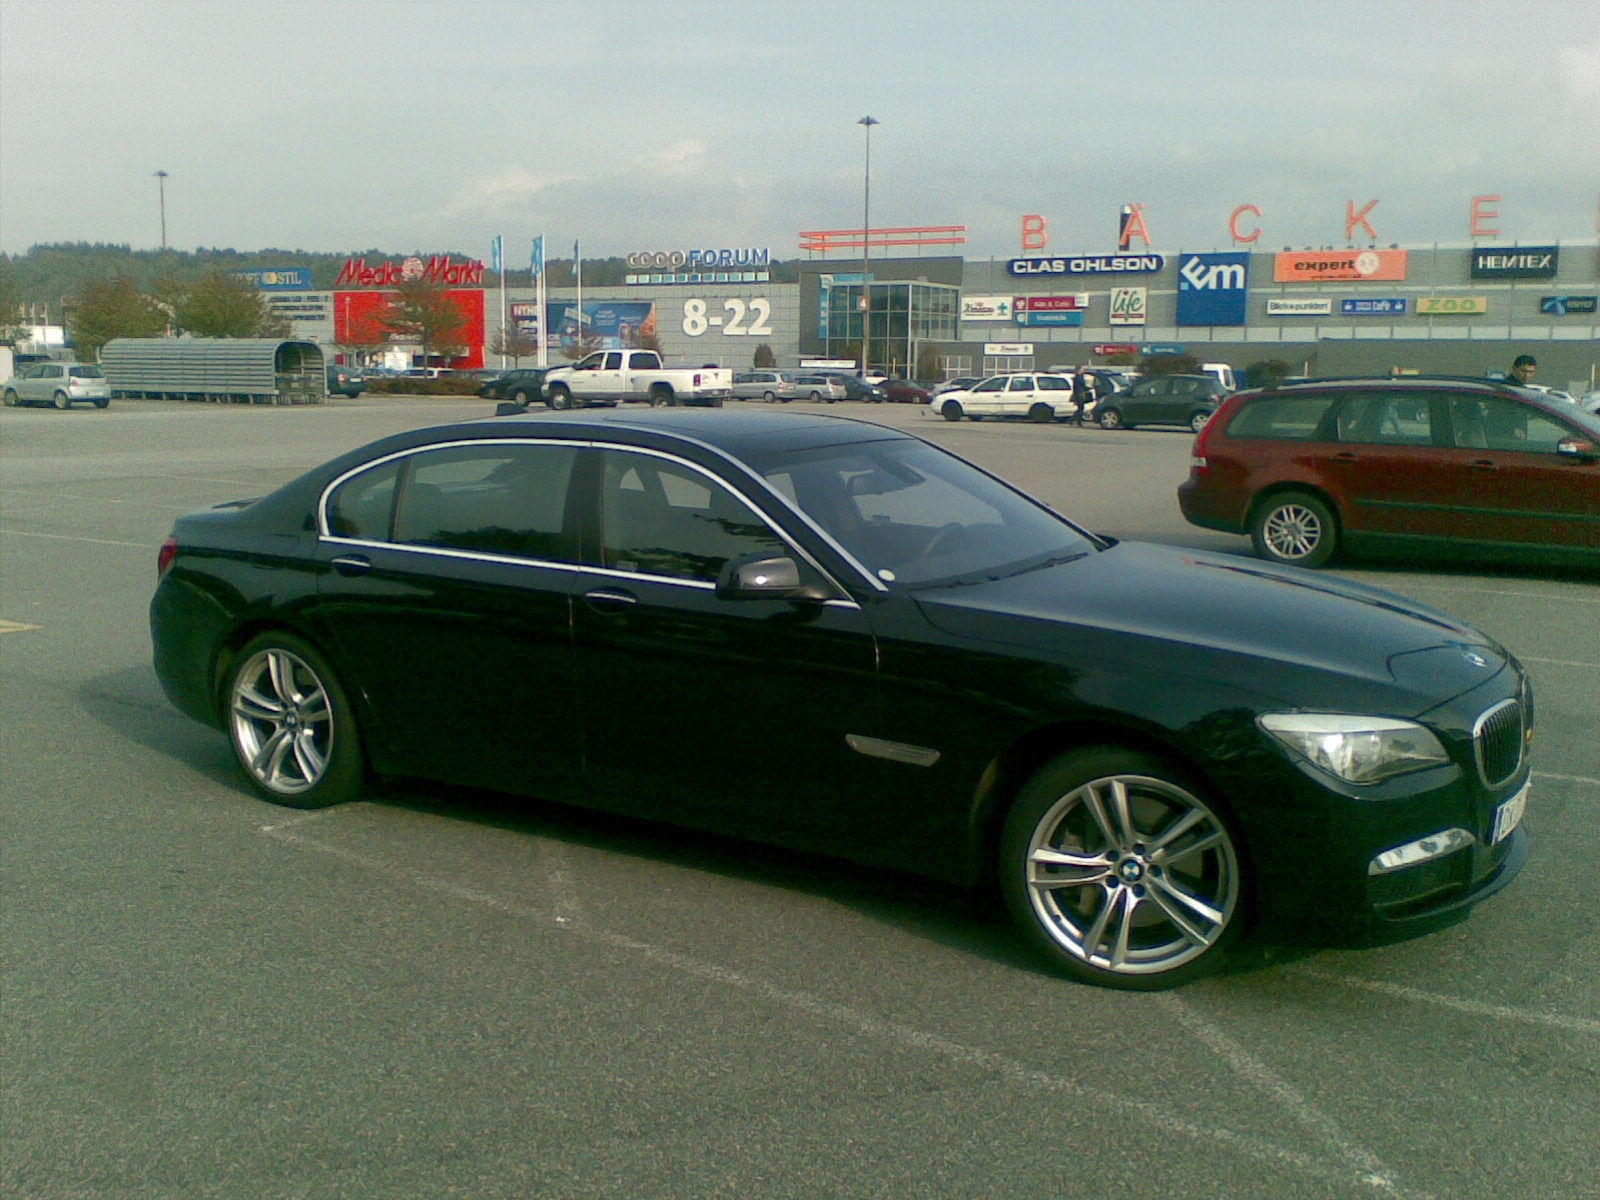 FileBMW Li F Jpg Wikimedia Commons - 760 bmw